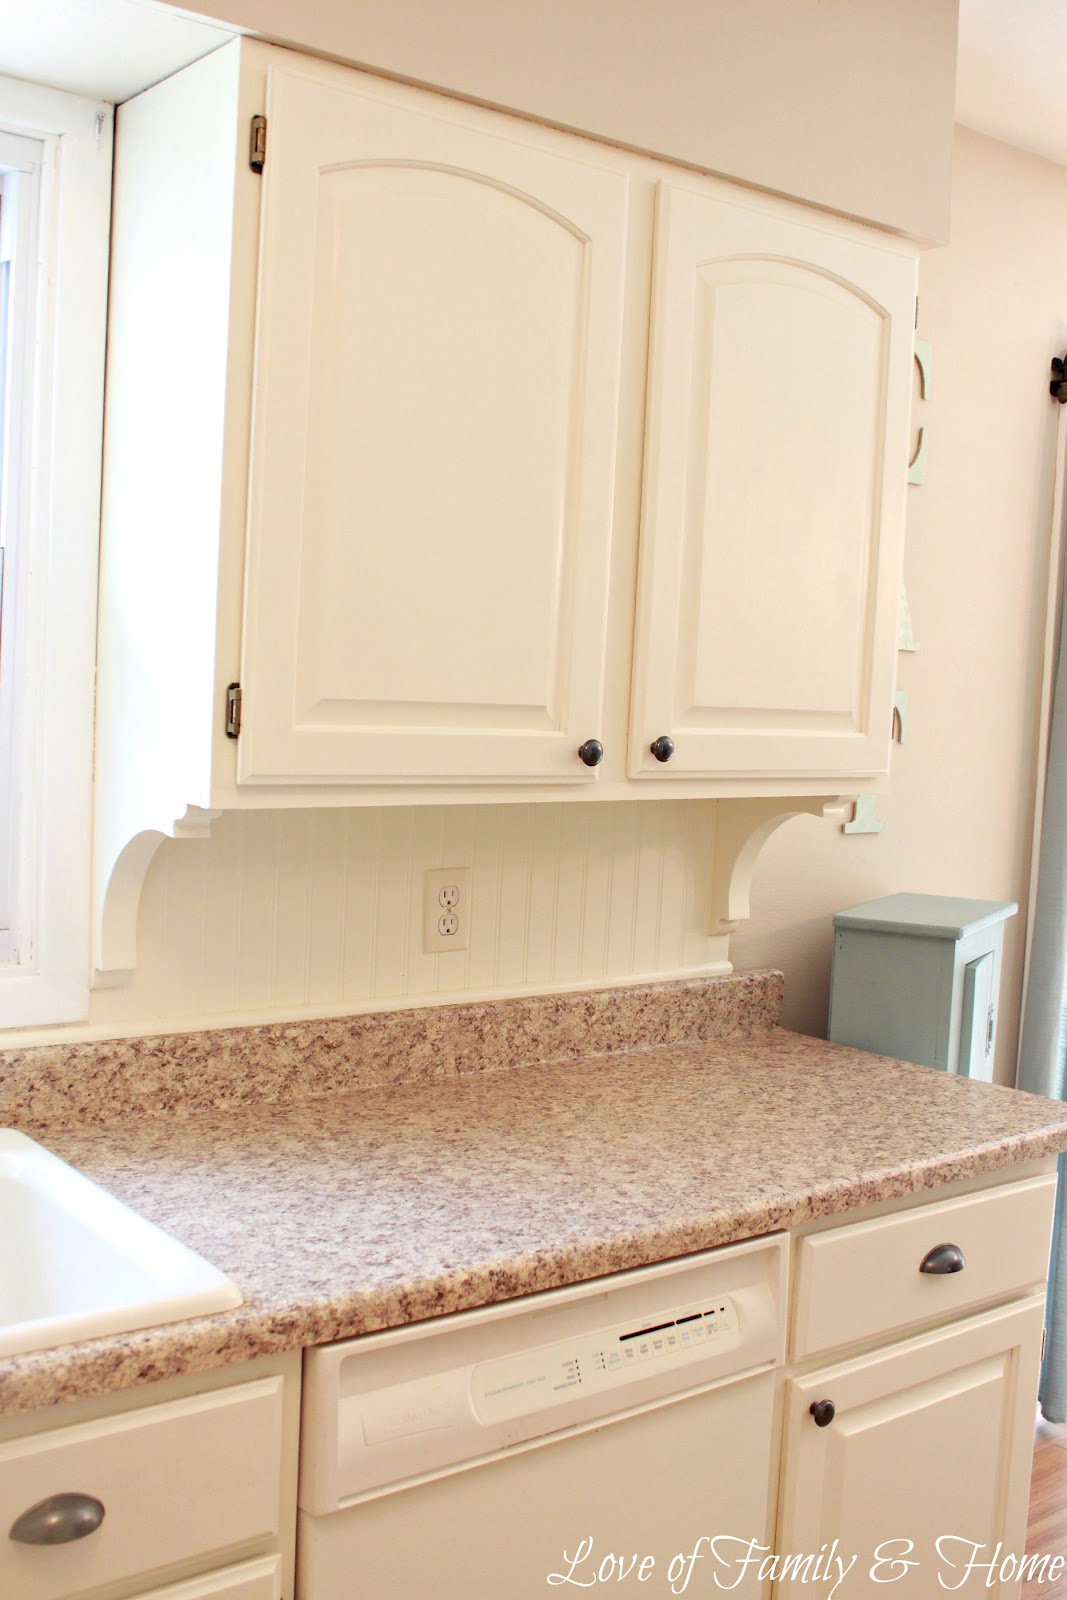 Kitchen Backsplash Beadboard beadboard backsplash, corbel love, & a few other kitchen updates